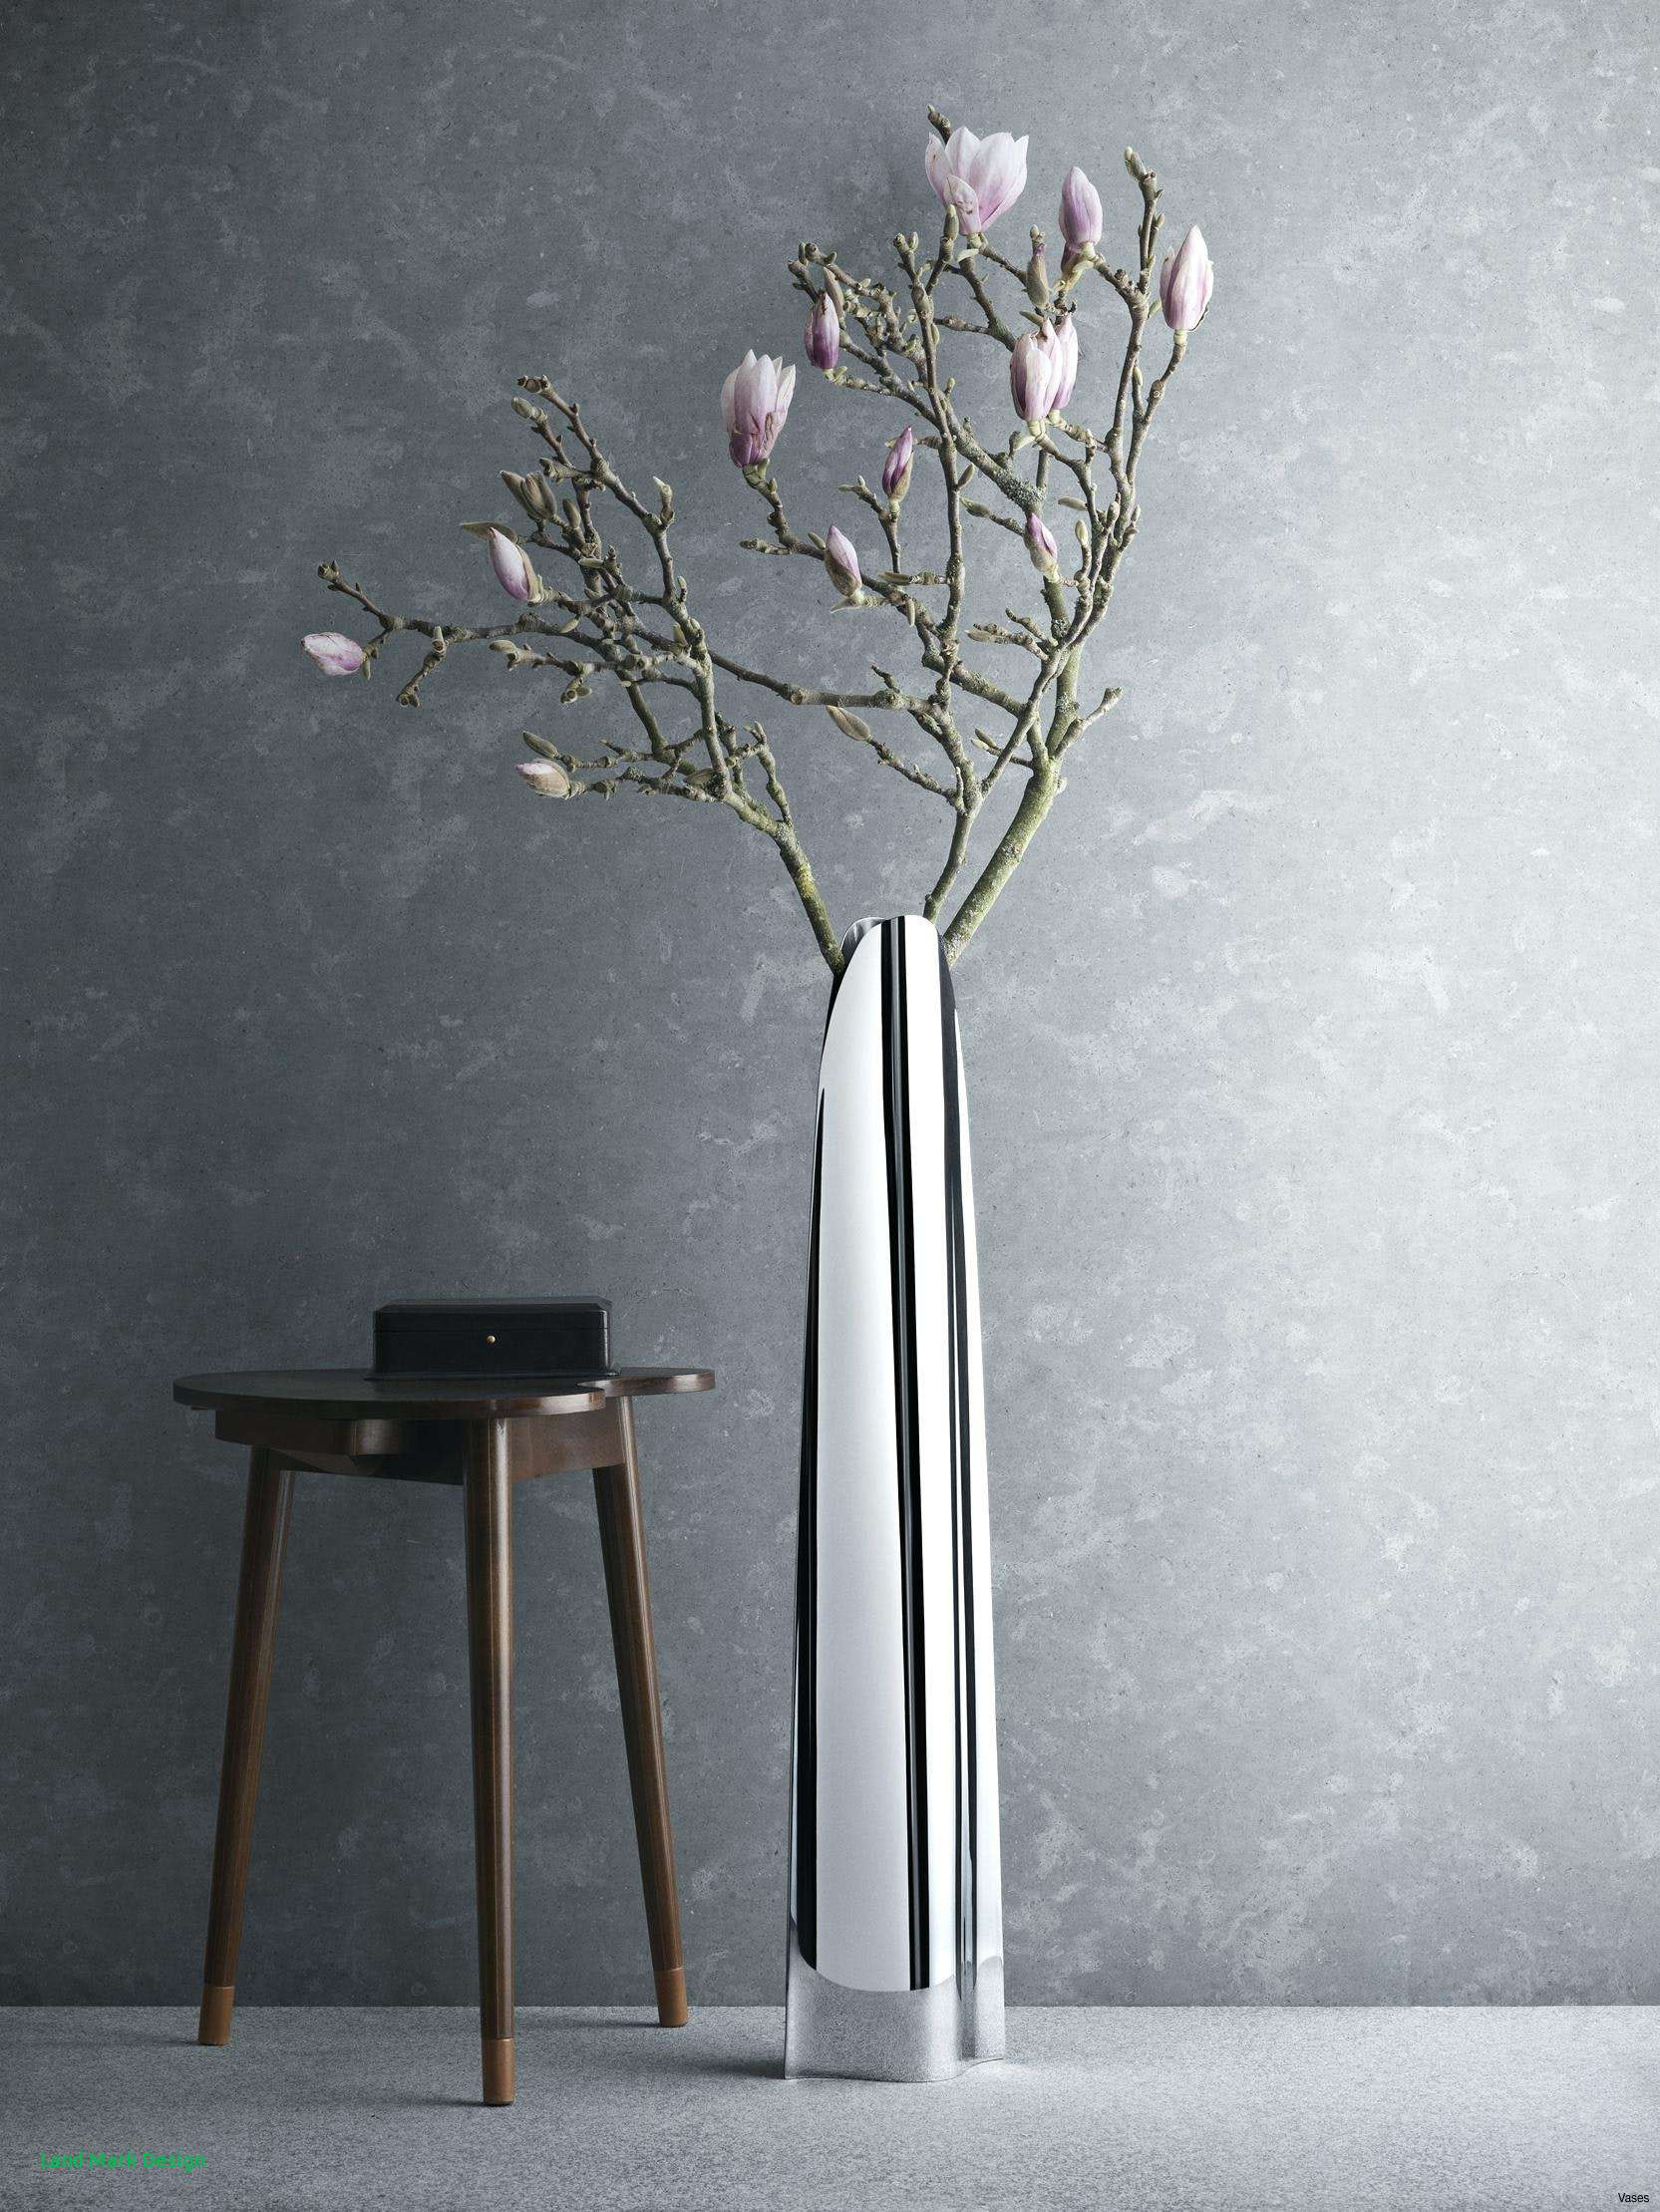 17 Trendy Very Tall Floor Vases Decorative Vase Ideas